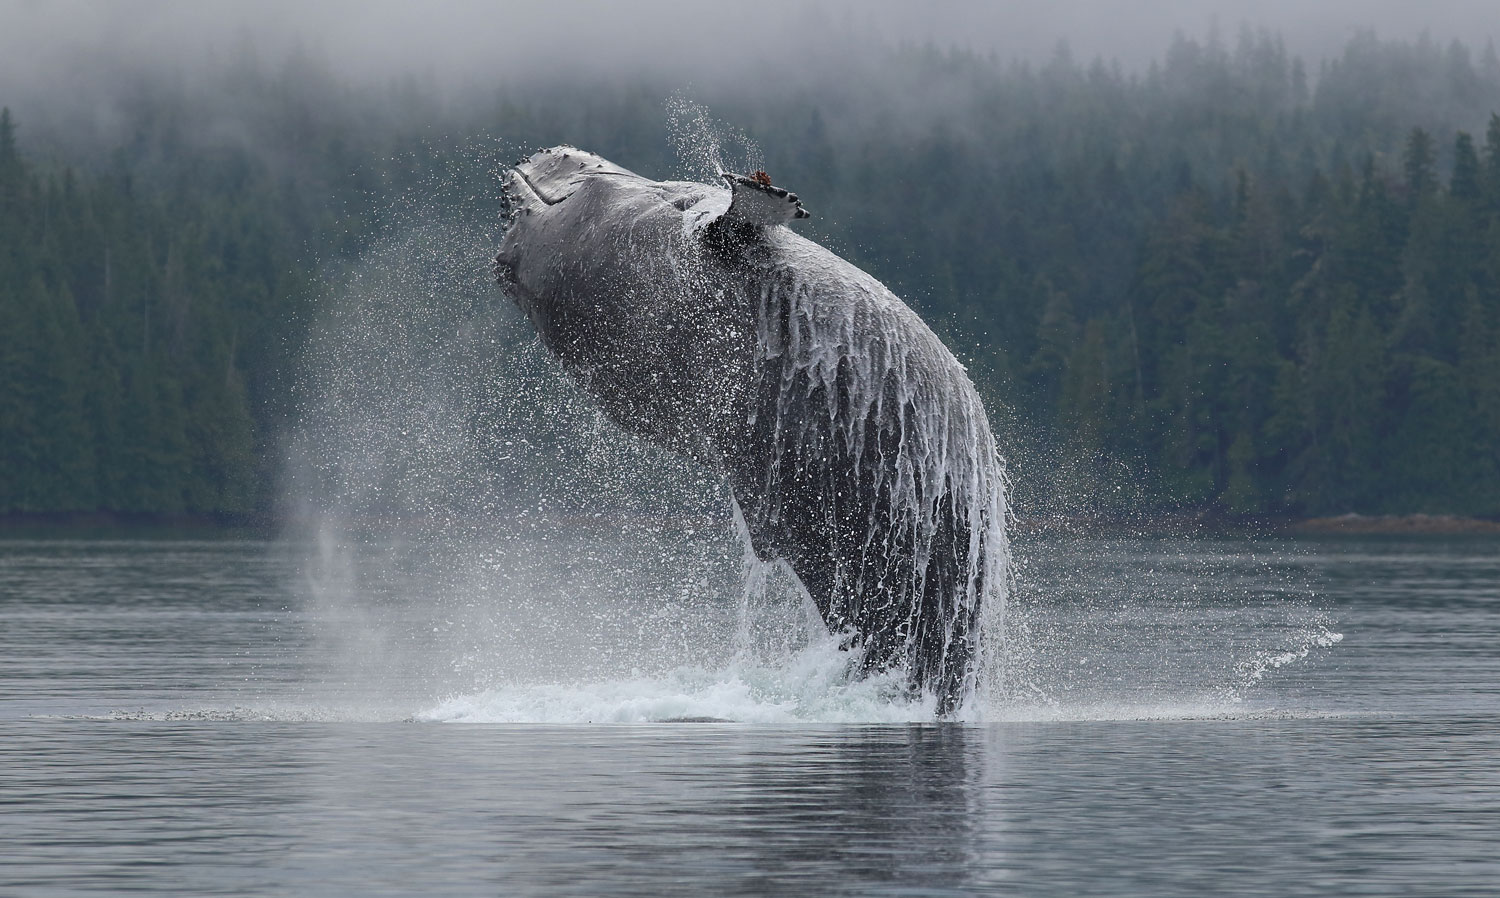 Go whale watching! You might see a humpback whale breaching.